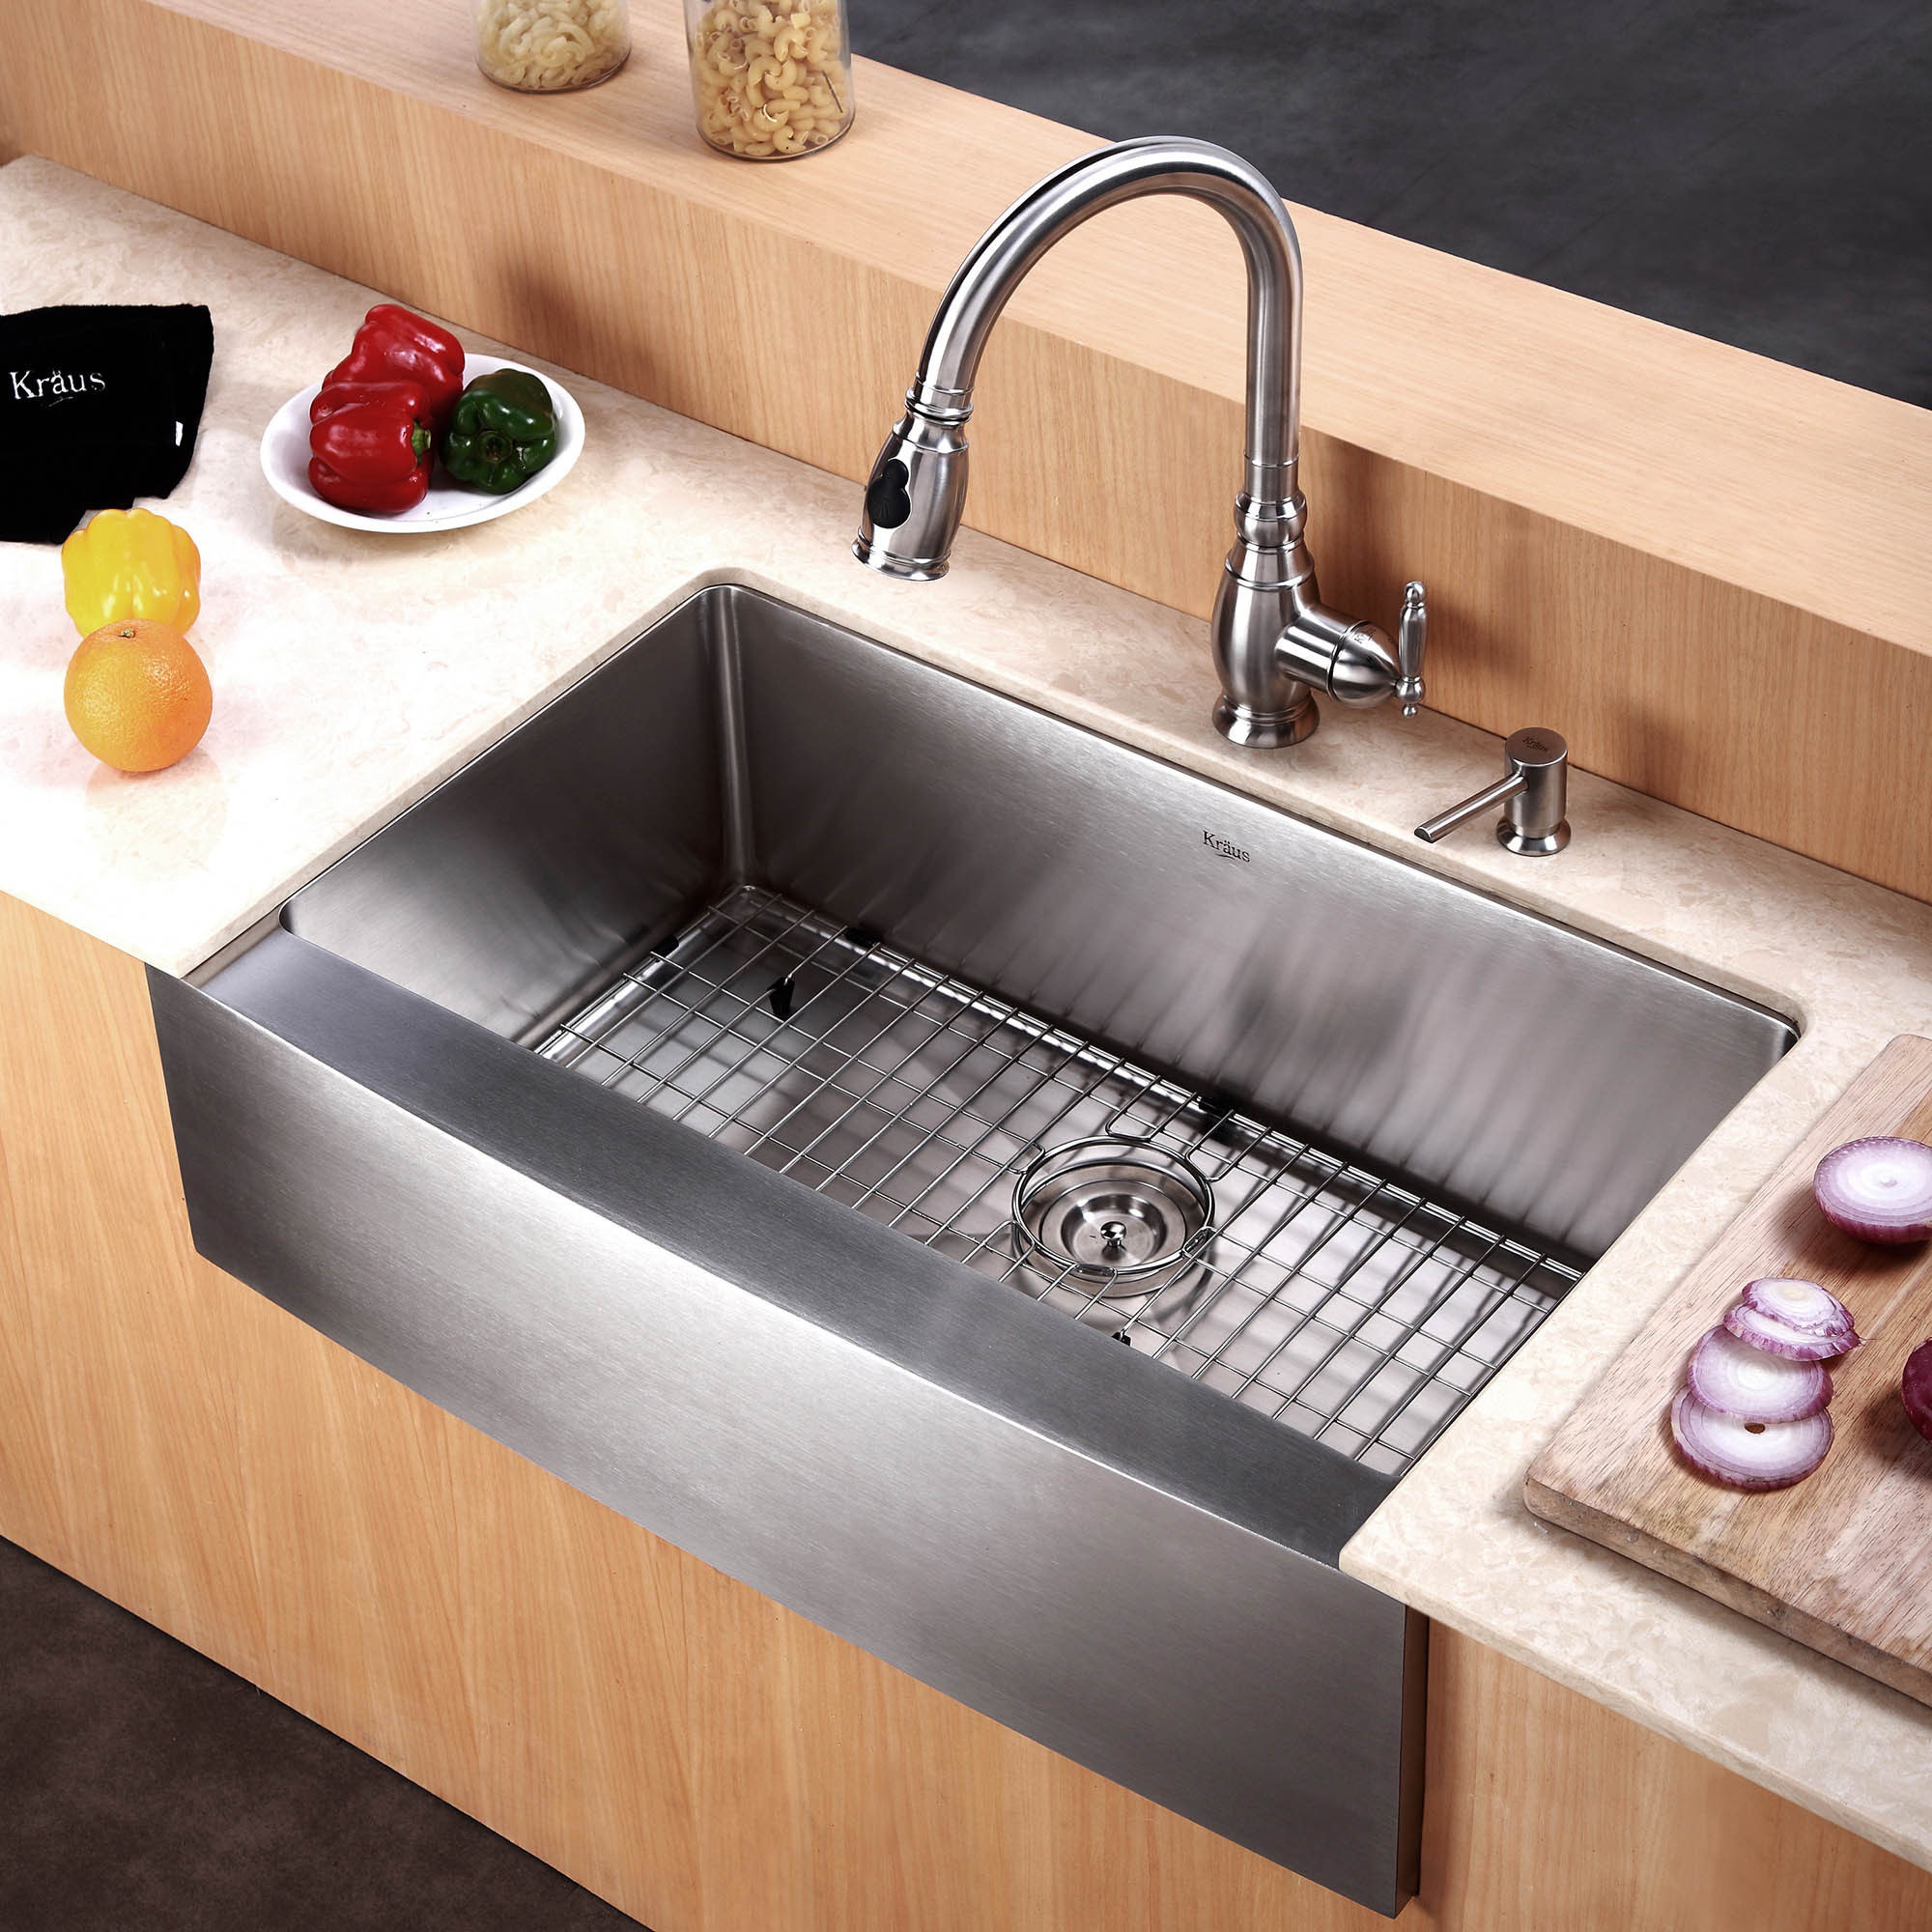 kraus 30 inch farmhouse single bowl stainless steel kitchen sink with noisedefend soundproofing   free shipping today   overstock com   11477700 kraus 30 inch farmhouse single bowl stainless steel kitchen sink      rh   overstock com